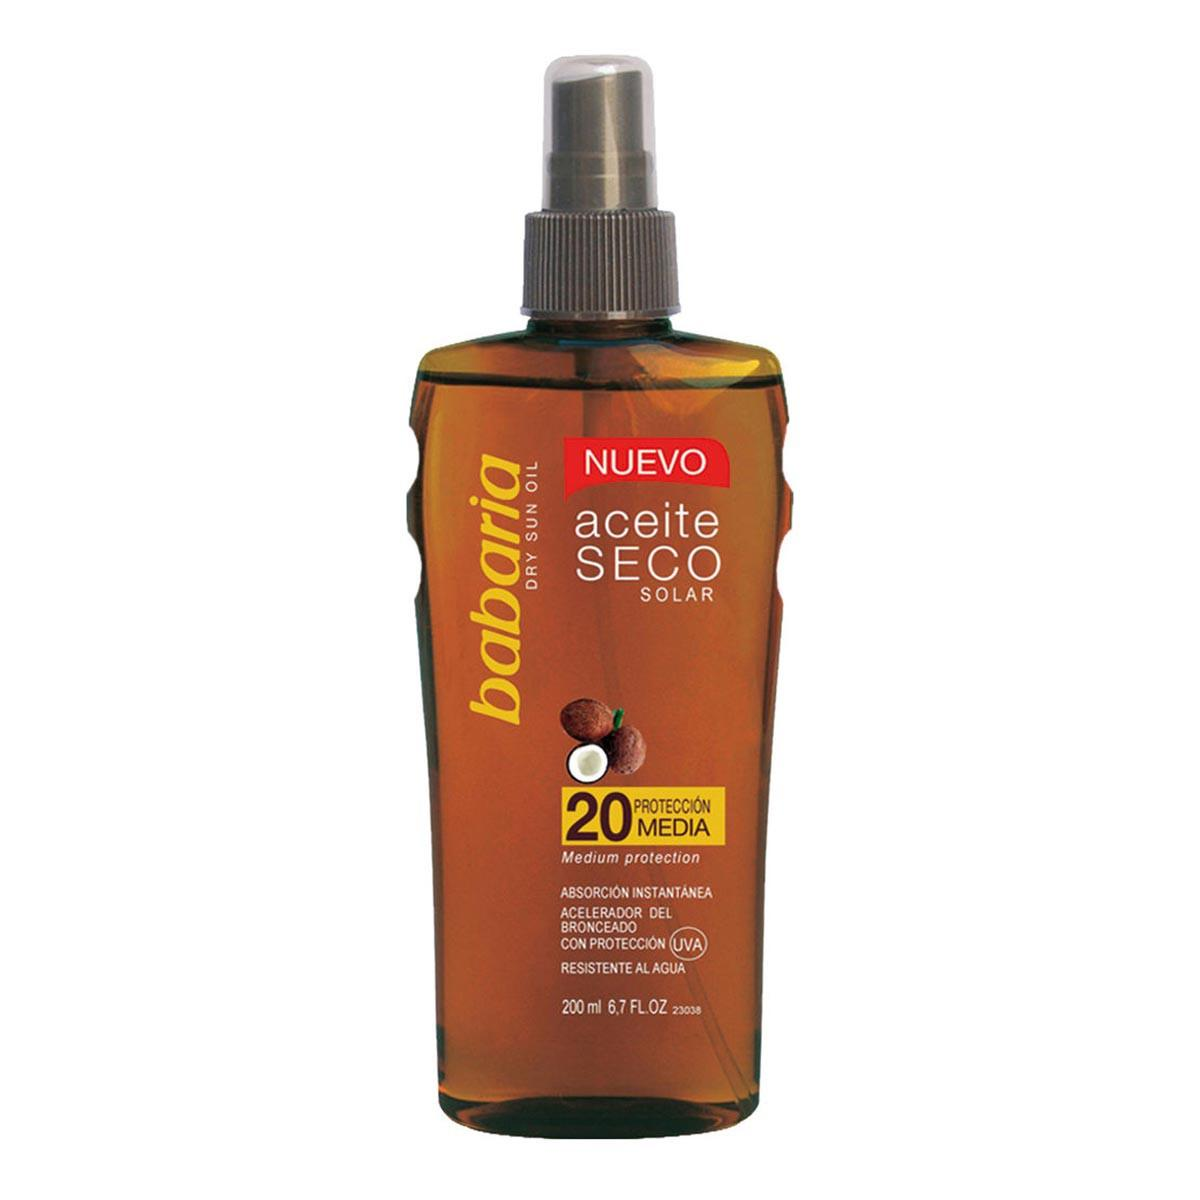 Babaria fragrances Solar Dry Oil Spf20 Medium Protection 200ml